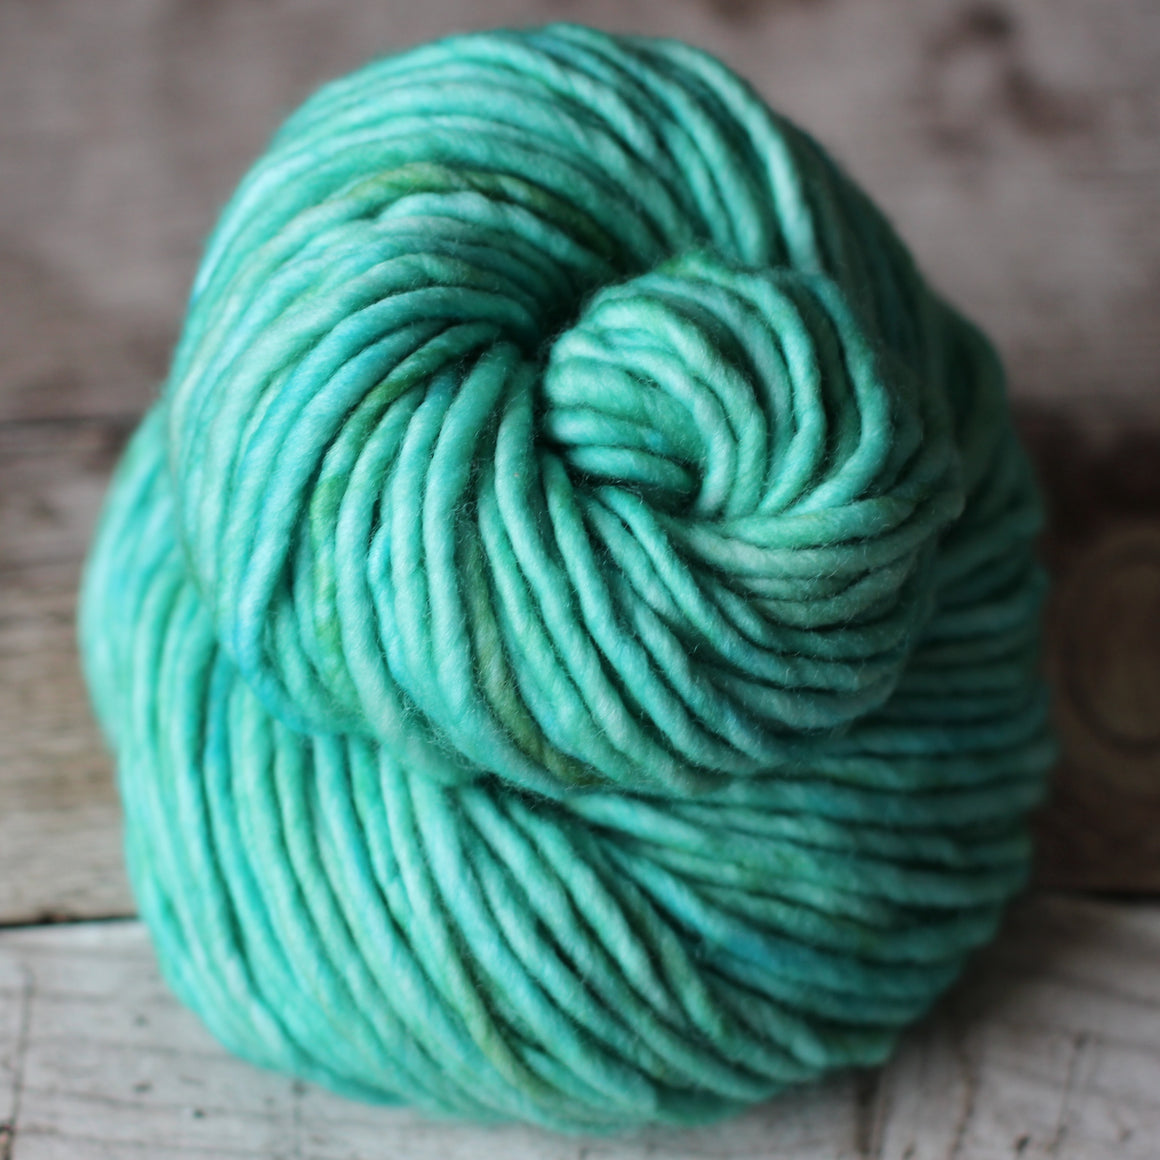 Superwash Merino / Nylon 20ply Yarn - Carla